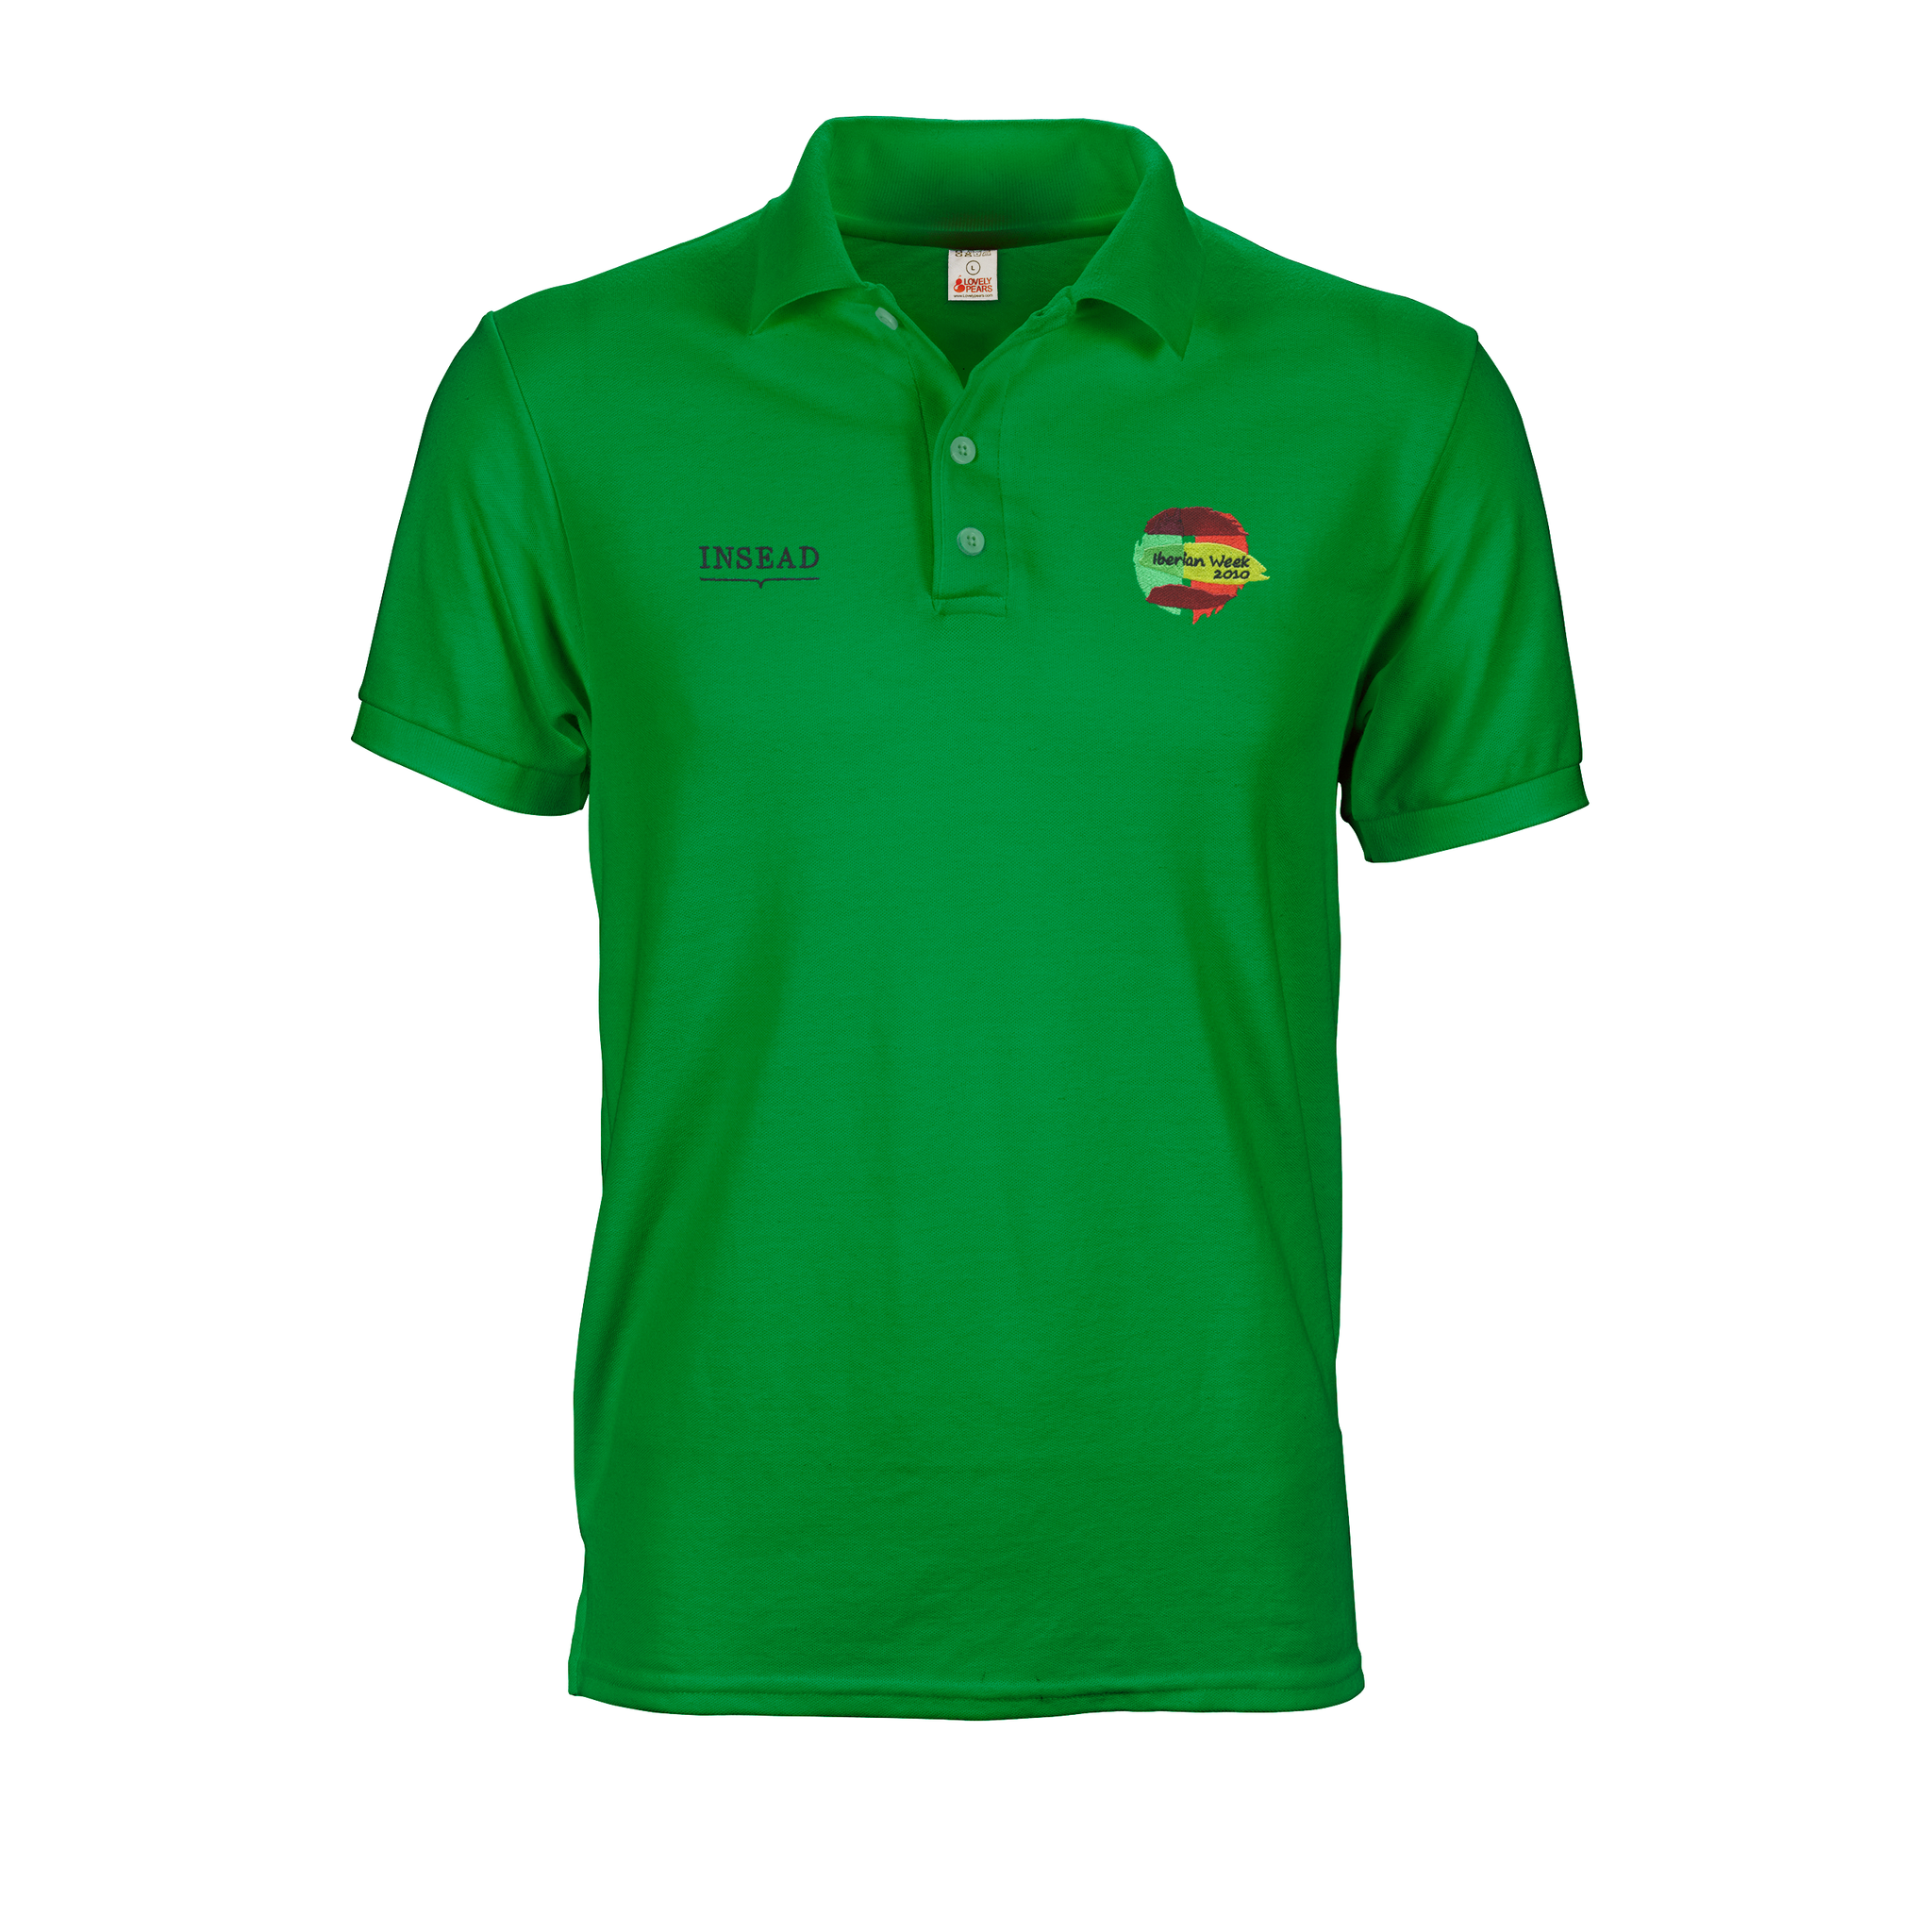 Green polo tee shirt with insead A6 logo embroidery